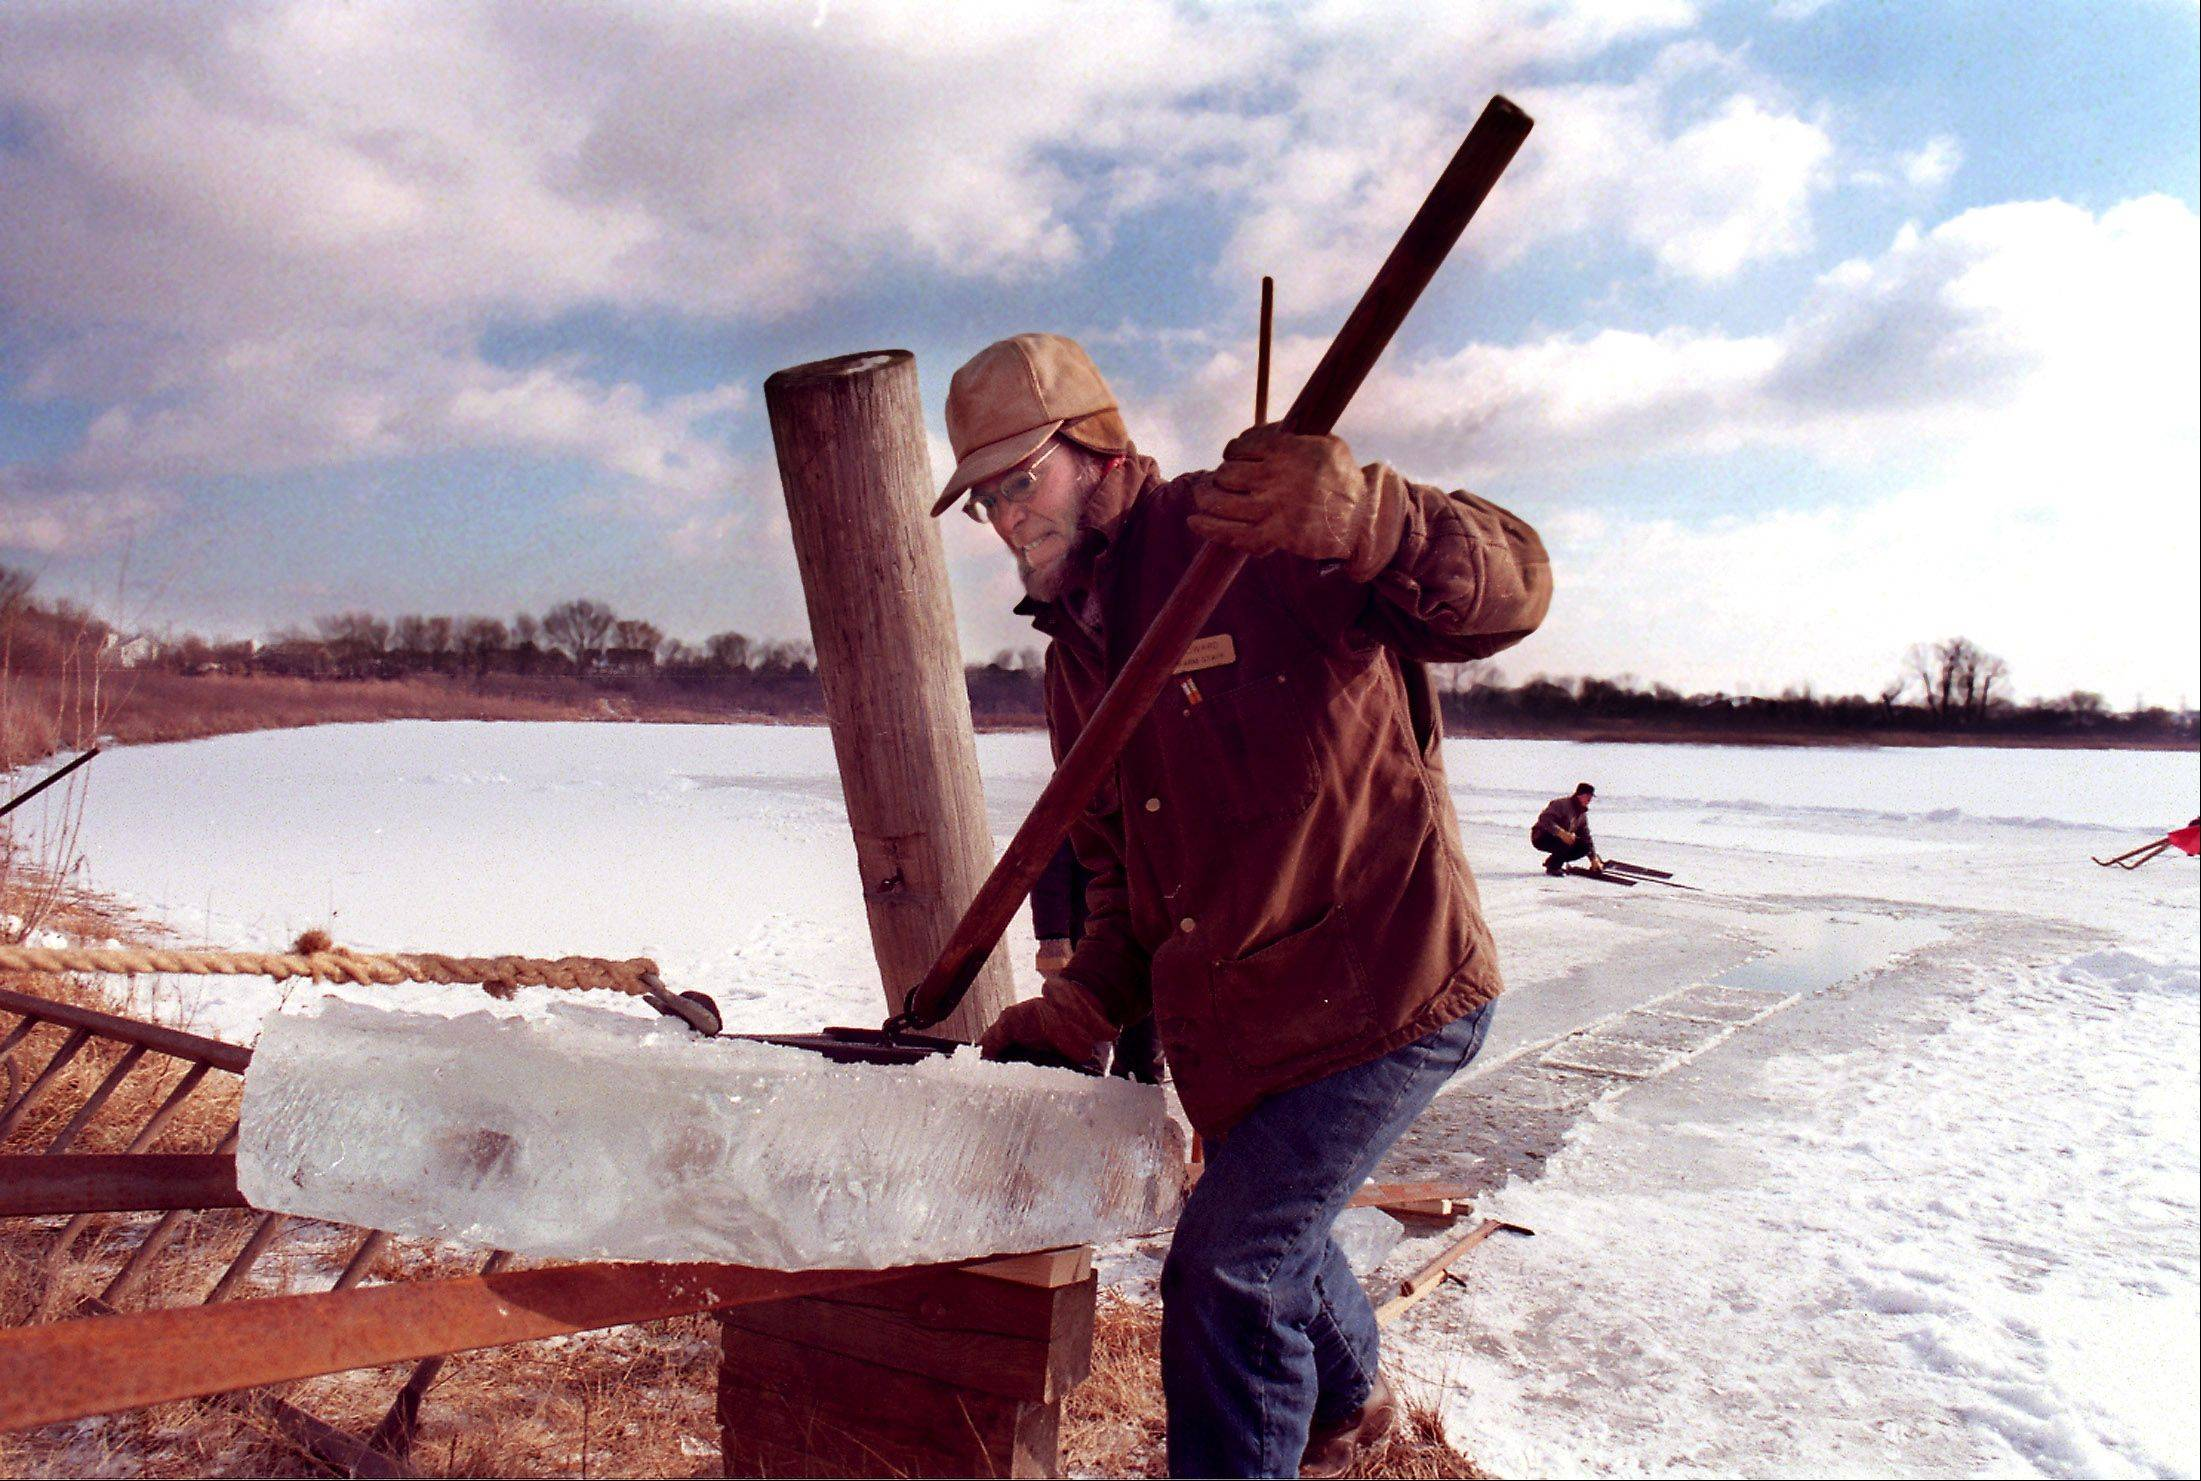 Visitors can see what it was like to harvest ice in the 1890s during a series of demonstrations later this month at Kline Creek Farm in West Chicago.